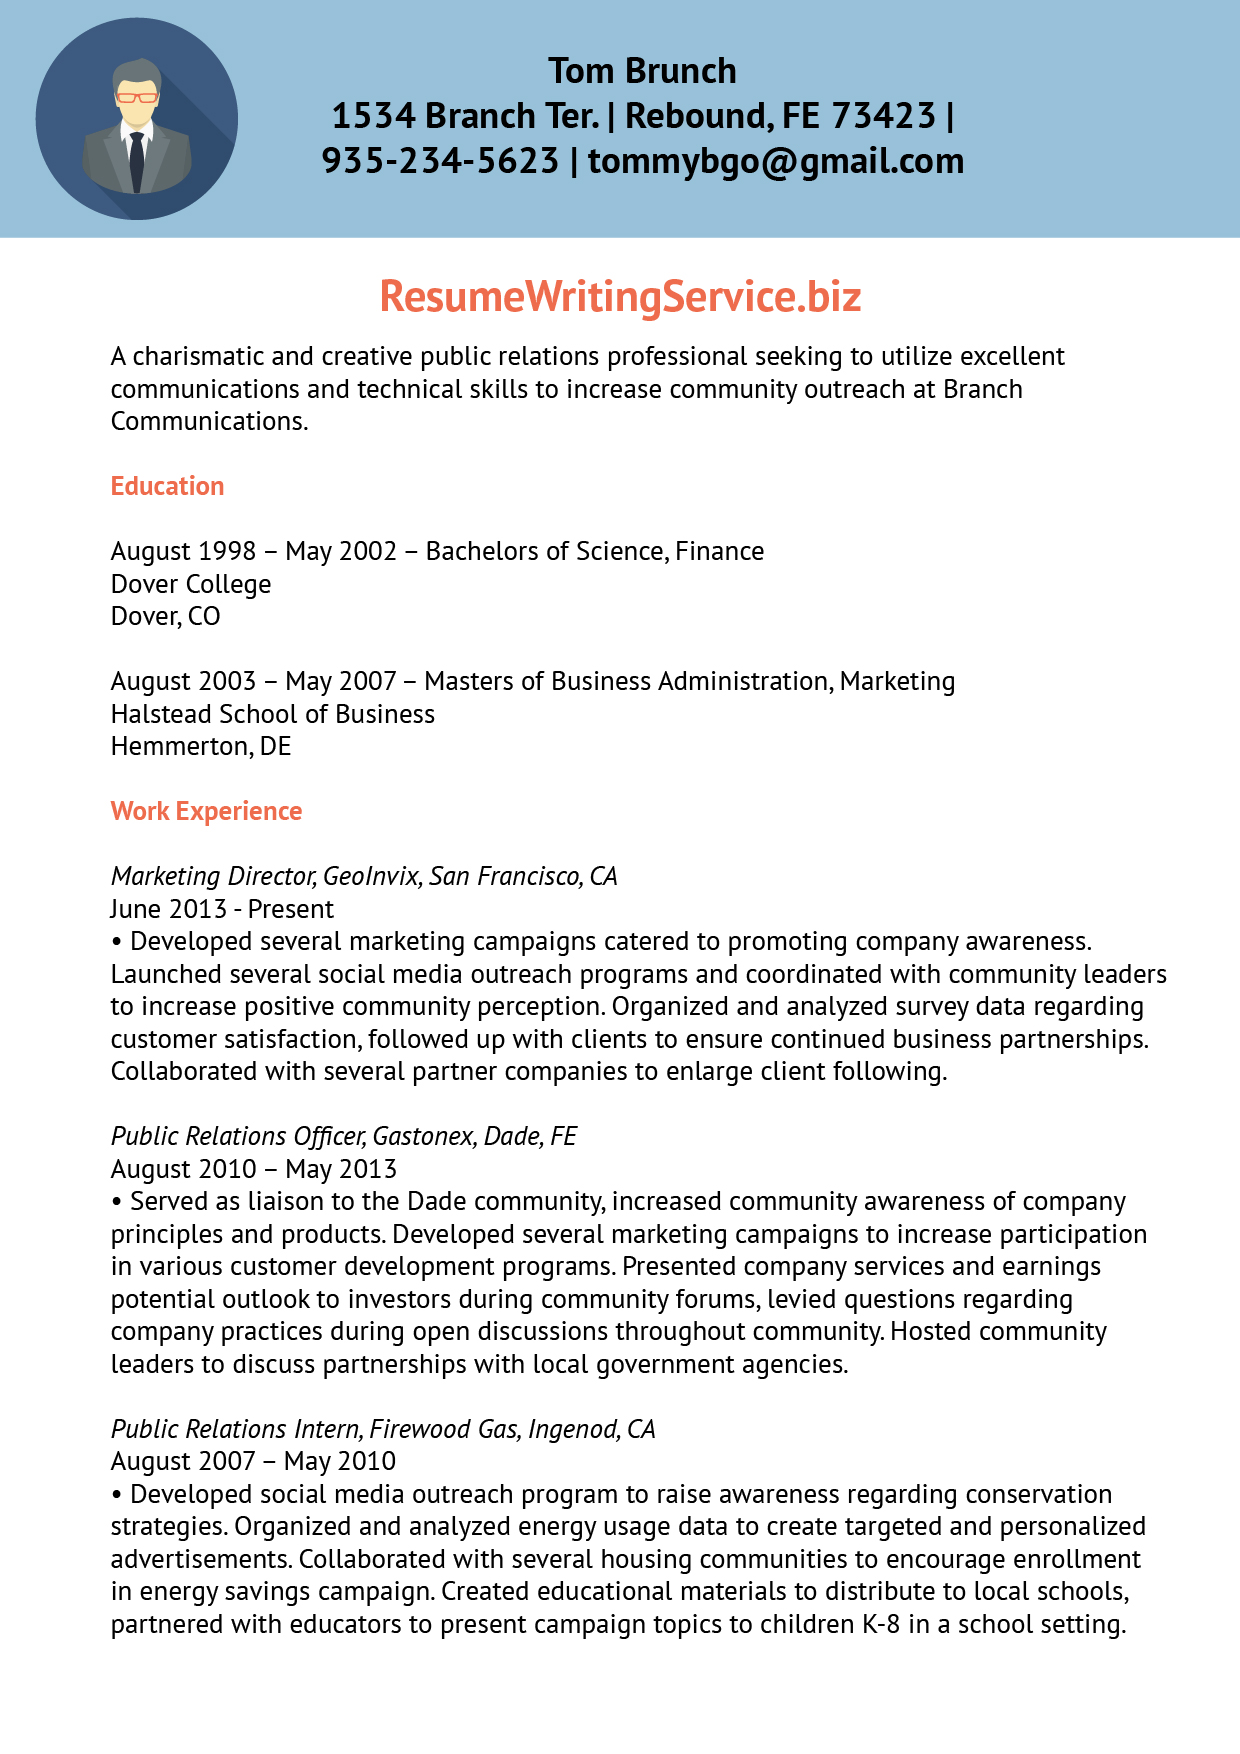 Public Relations Manager Resume Sample